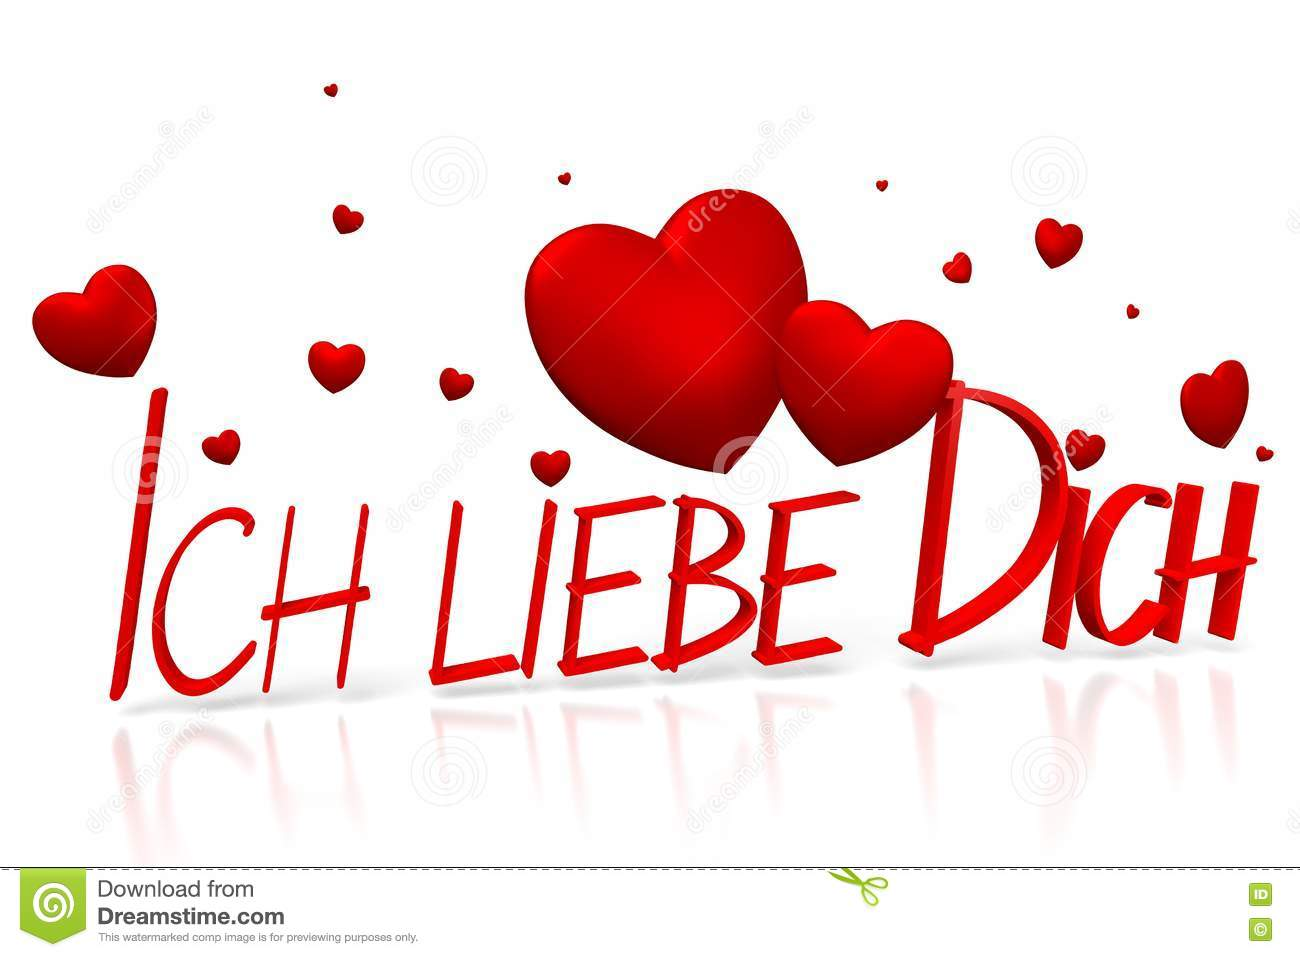 3D Ich Liebe Dich I Love You German Illustration Image – German Valentines Day Cards